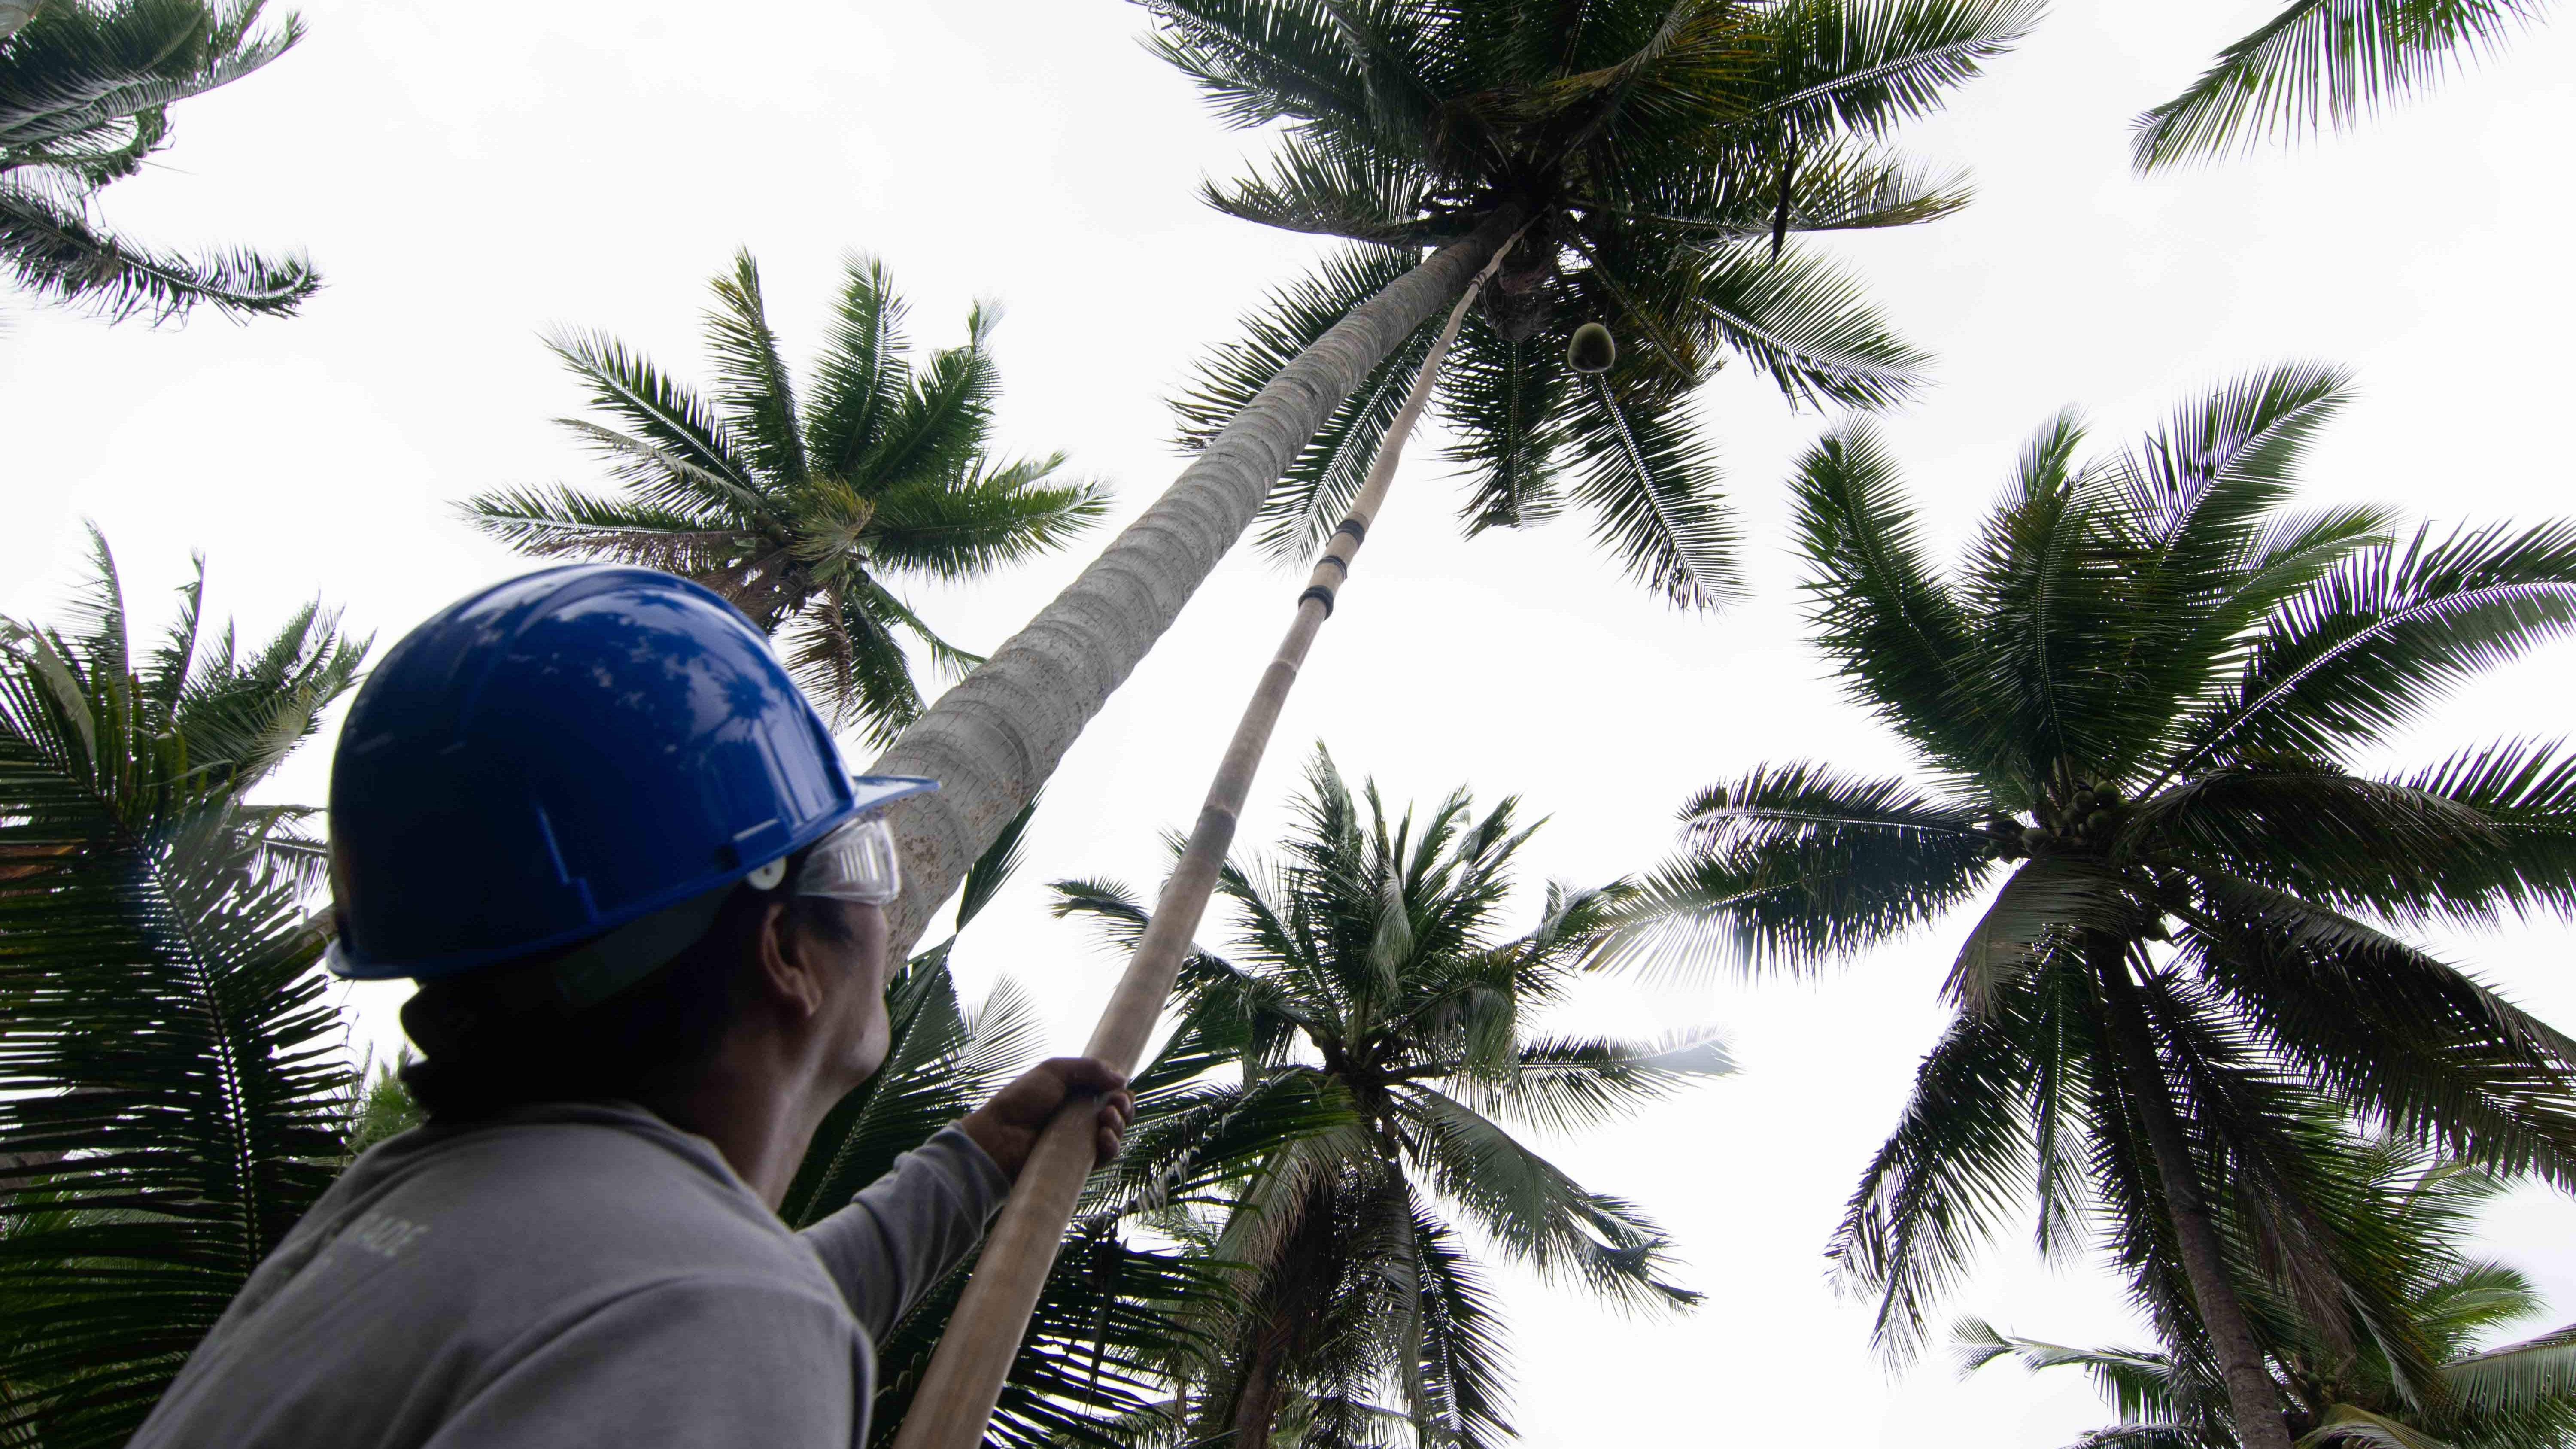 Coconut Oil Could Be The Next Disastrous Biofuel